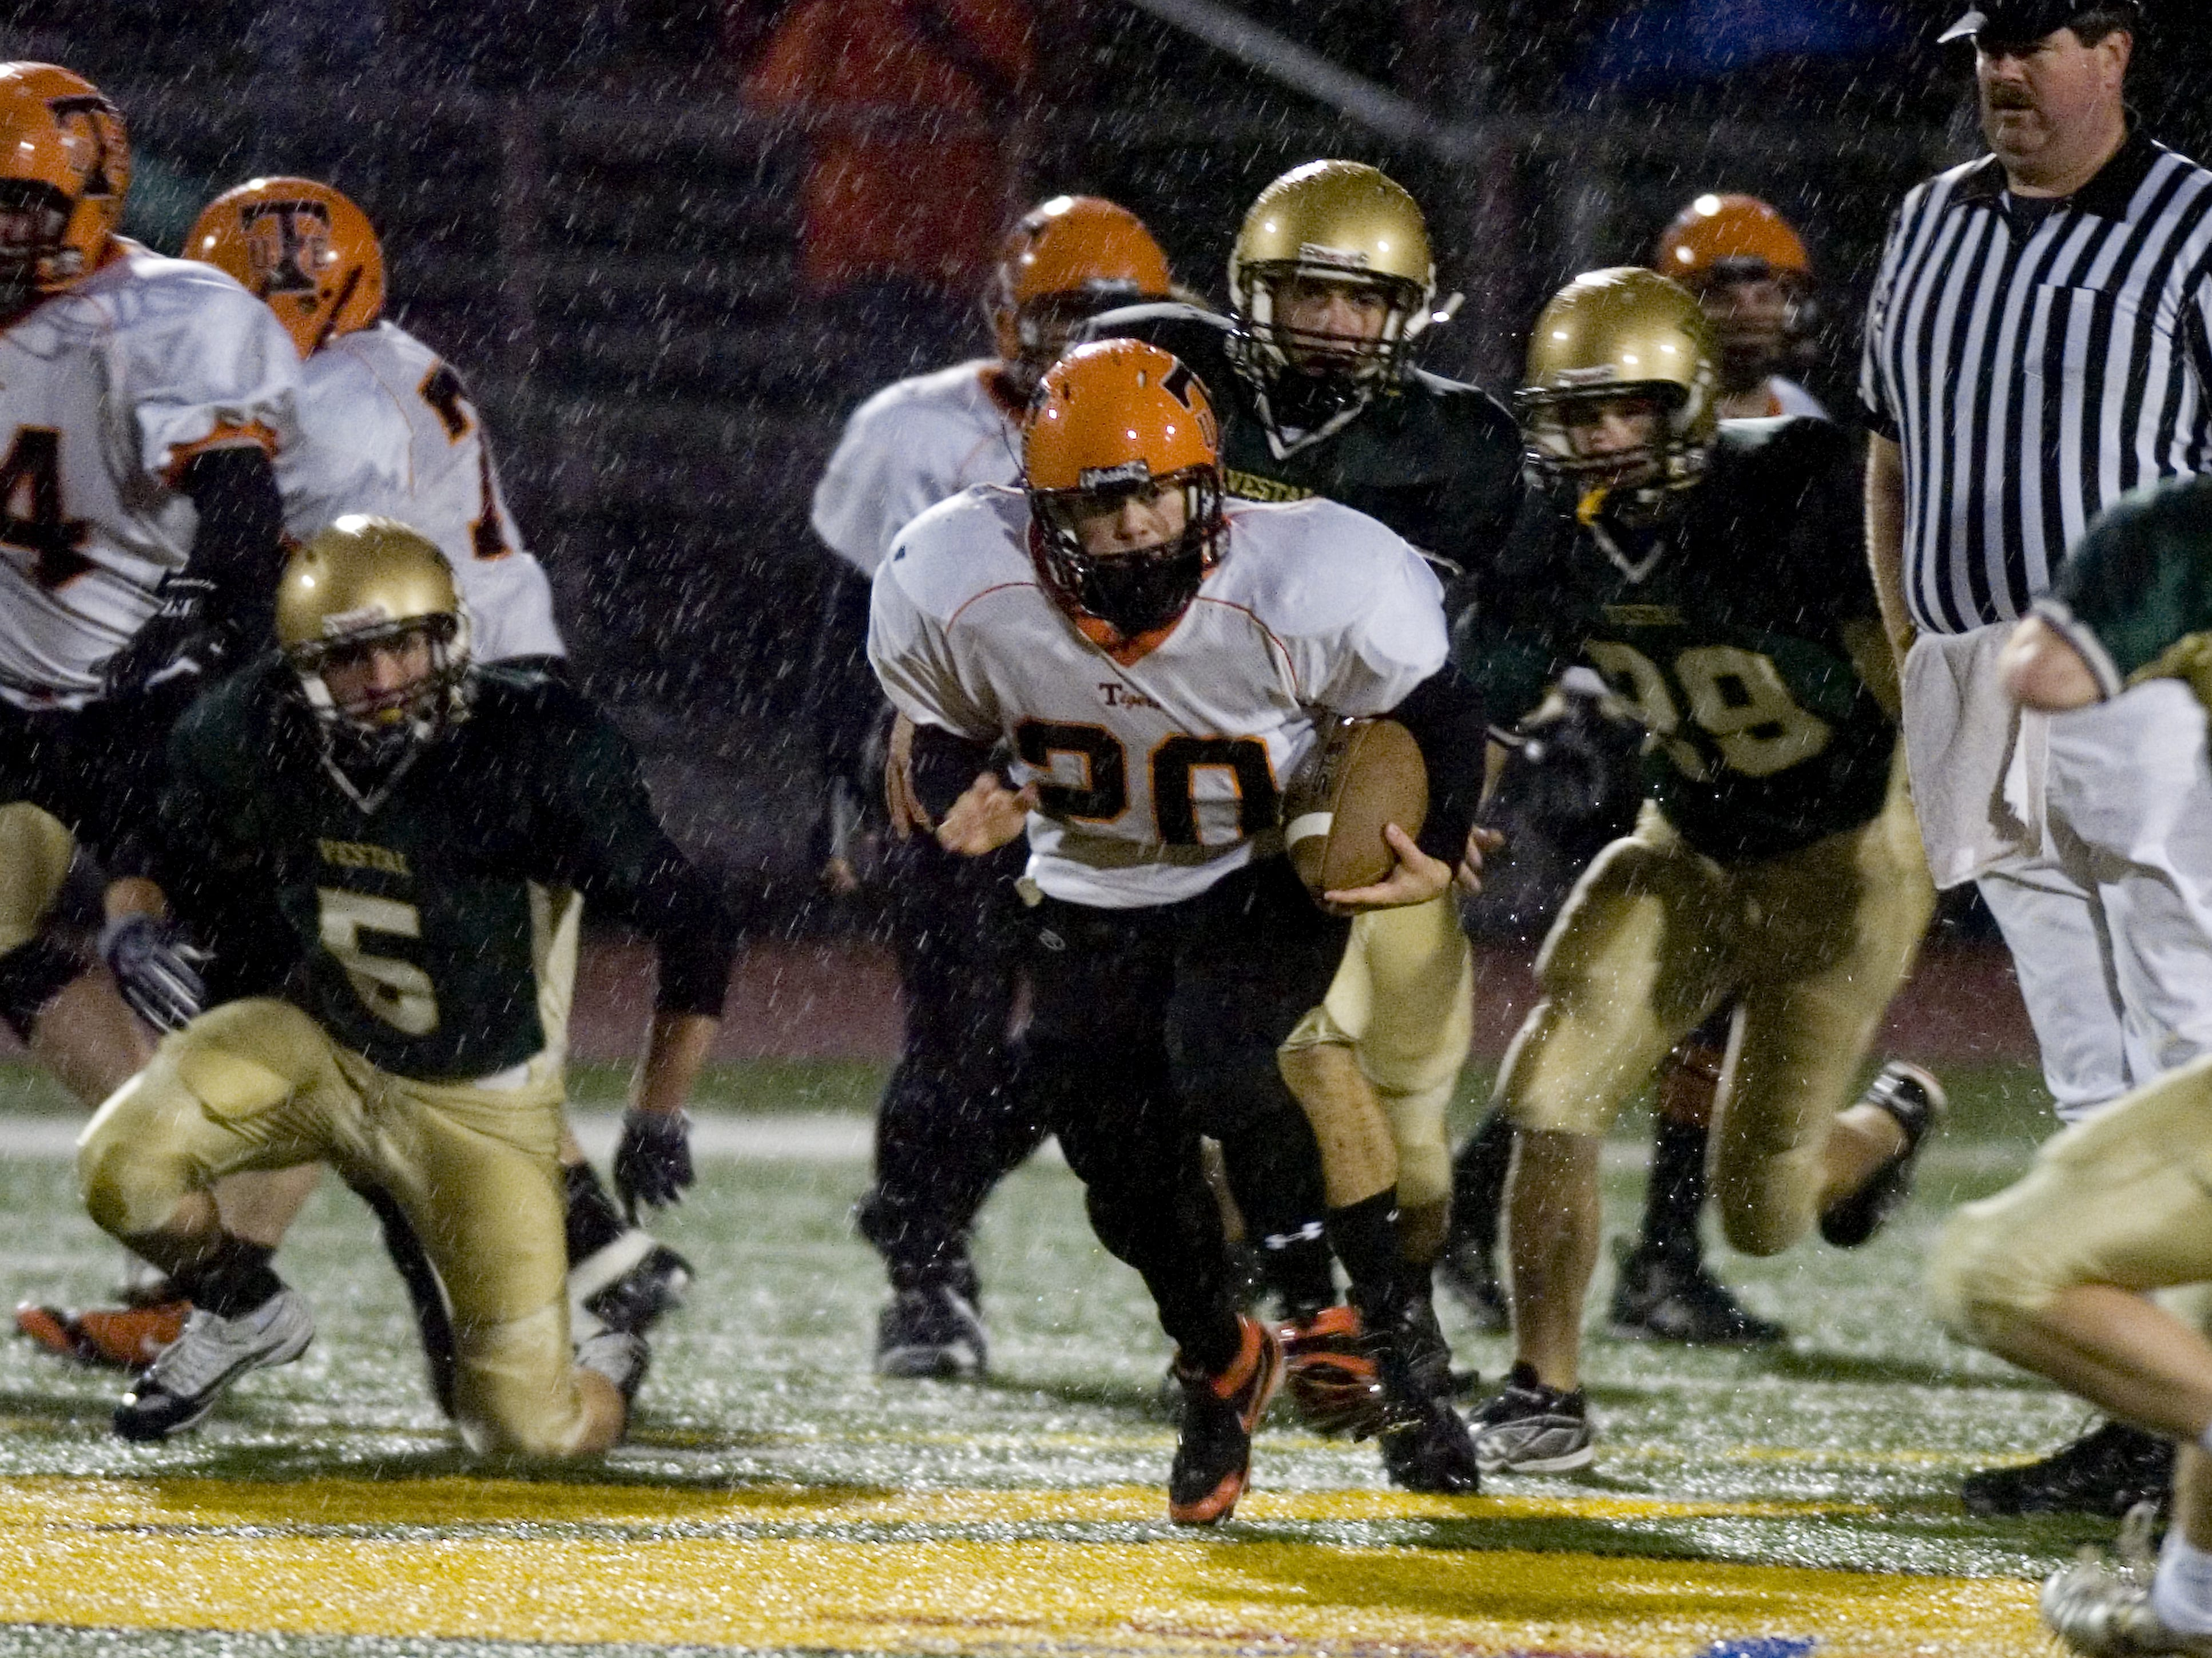 In 2009, Union-Endicott's William Bedoya, 20, runs away with the ball in the first quarter at Dick Hoover Stadium.